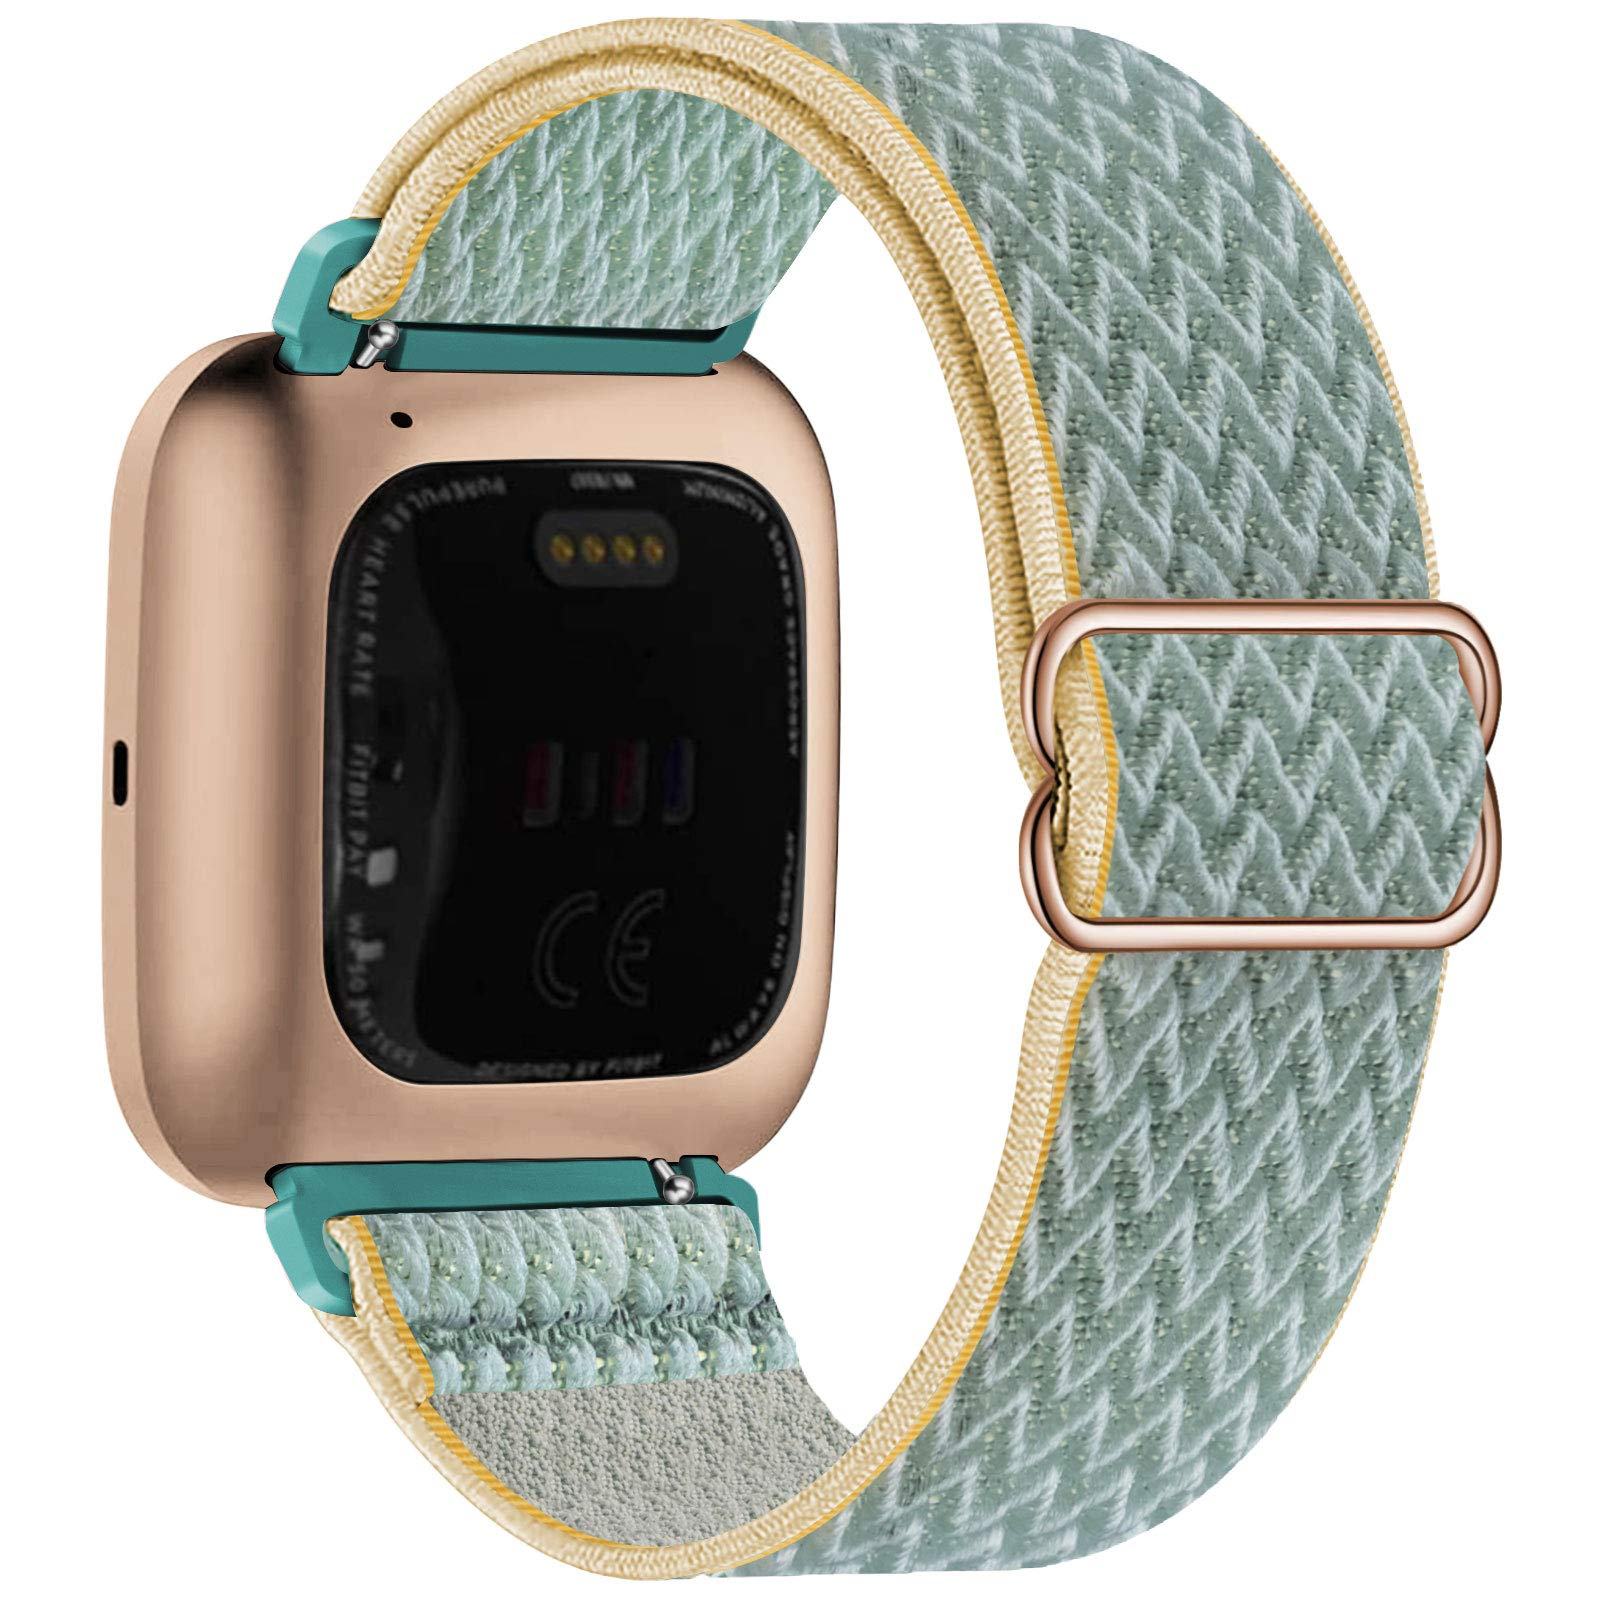 UHKZ Stretchy Nylon Bands Compatible with Fitbit Versa/Versa 2/Versa Lite/Versa SE for Women Men,Adjustable Breathable Fabric Sport Elastic Wristband for Fitbit Versa Smart Watch